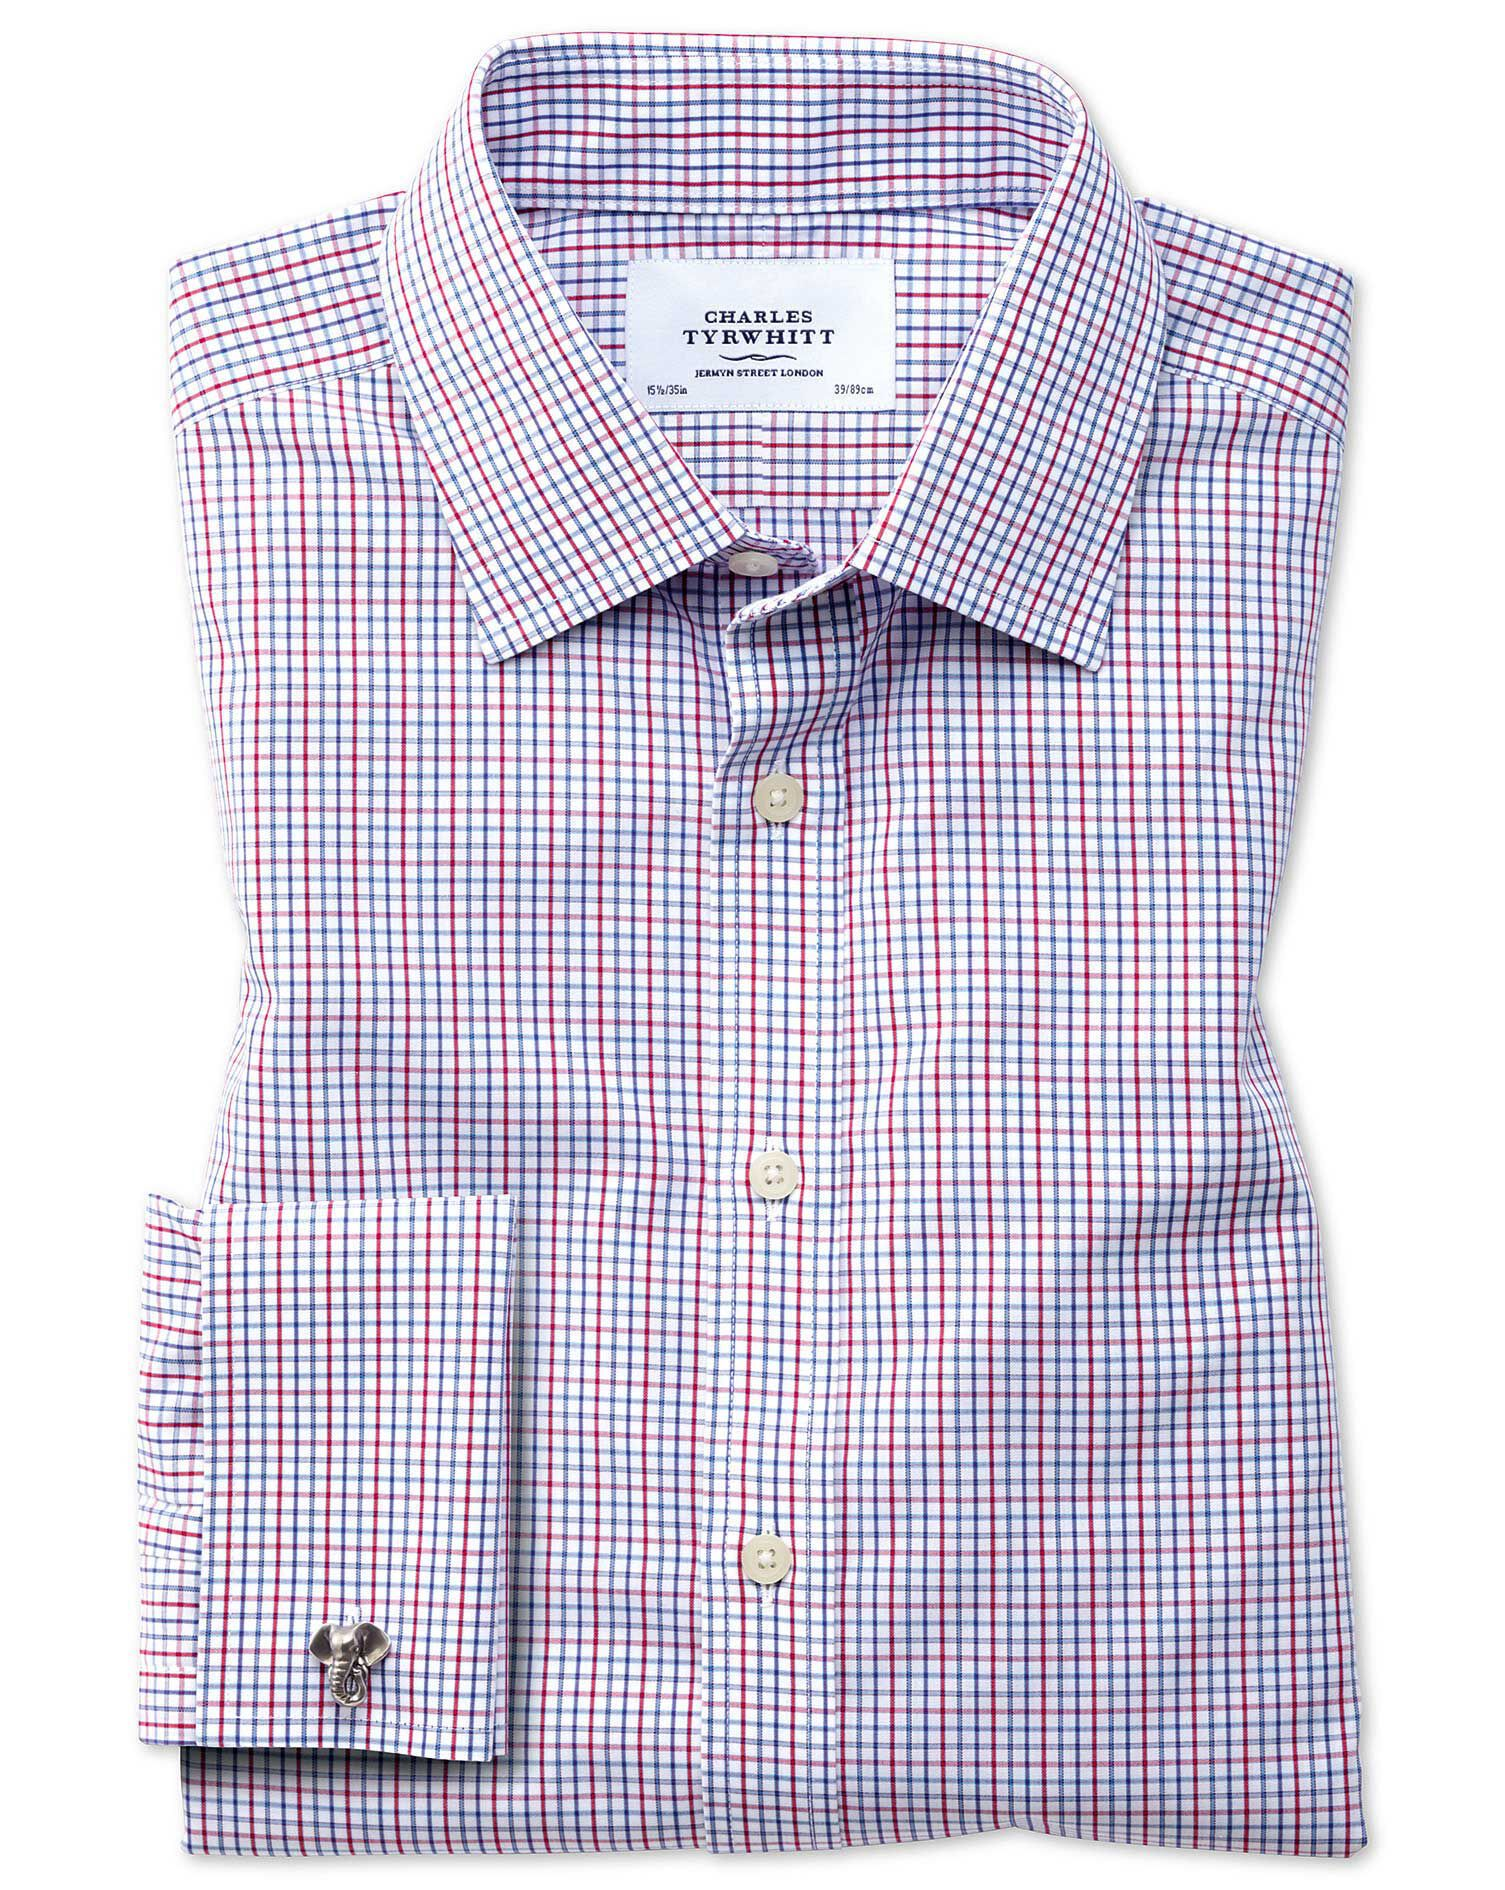 Slim Fit Non-Iron Multi Grid Check Cotton Formal Shirt Double Cuff Size 17/38 by Charles Tyrwhitt